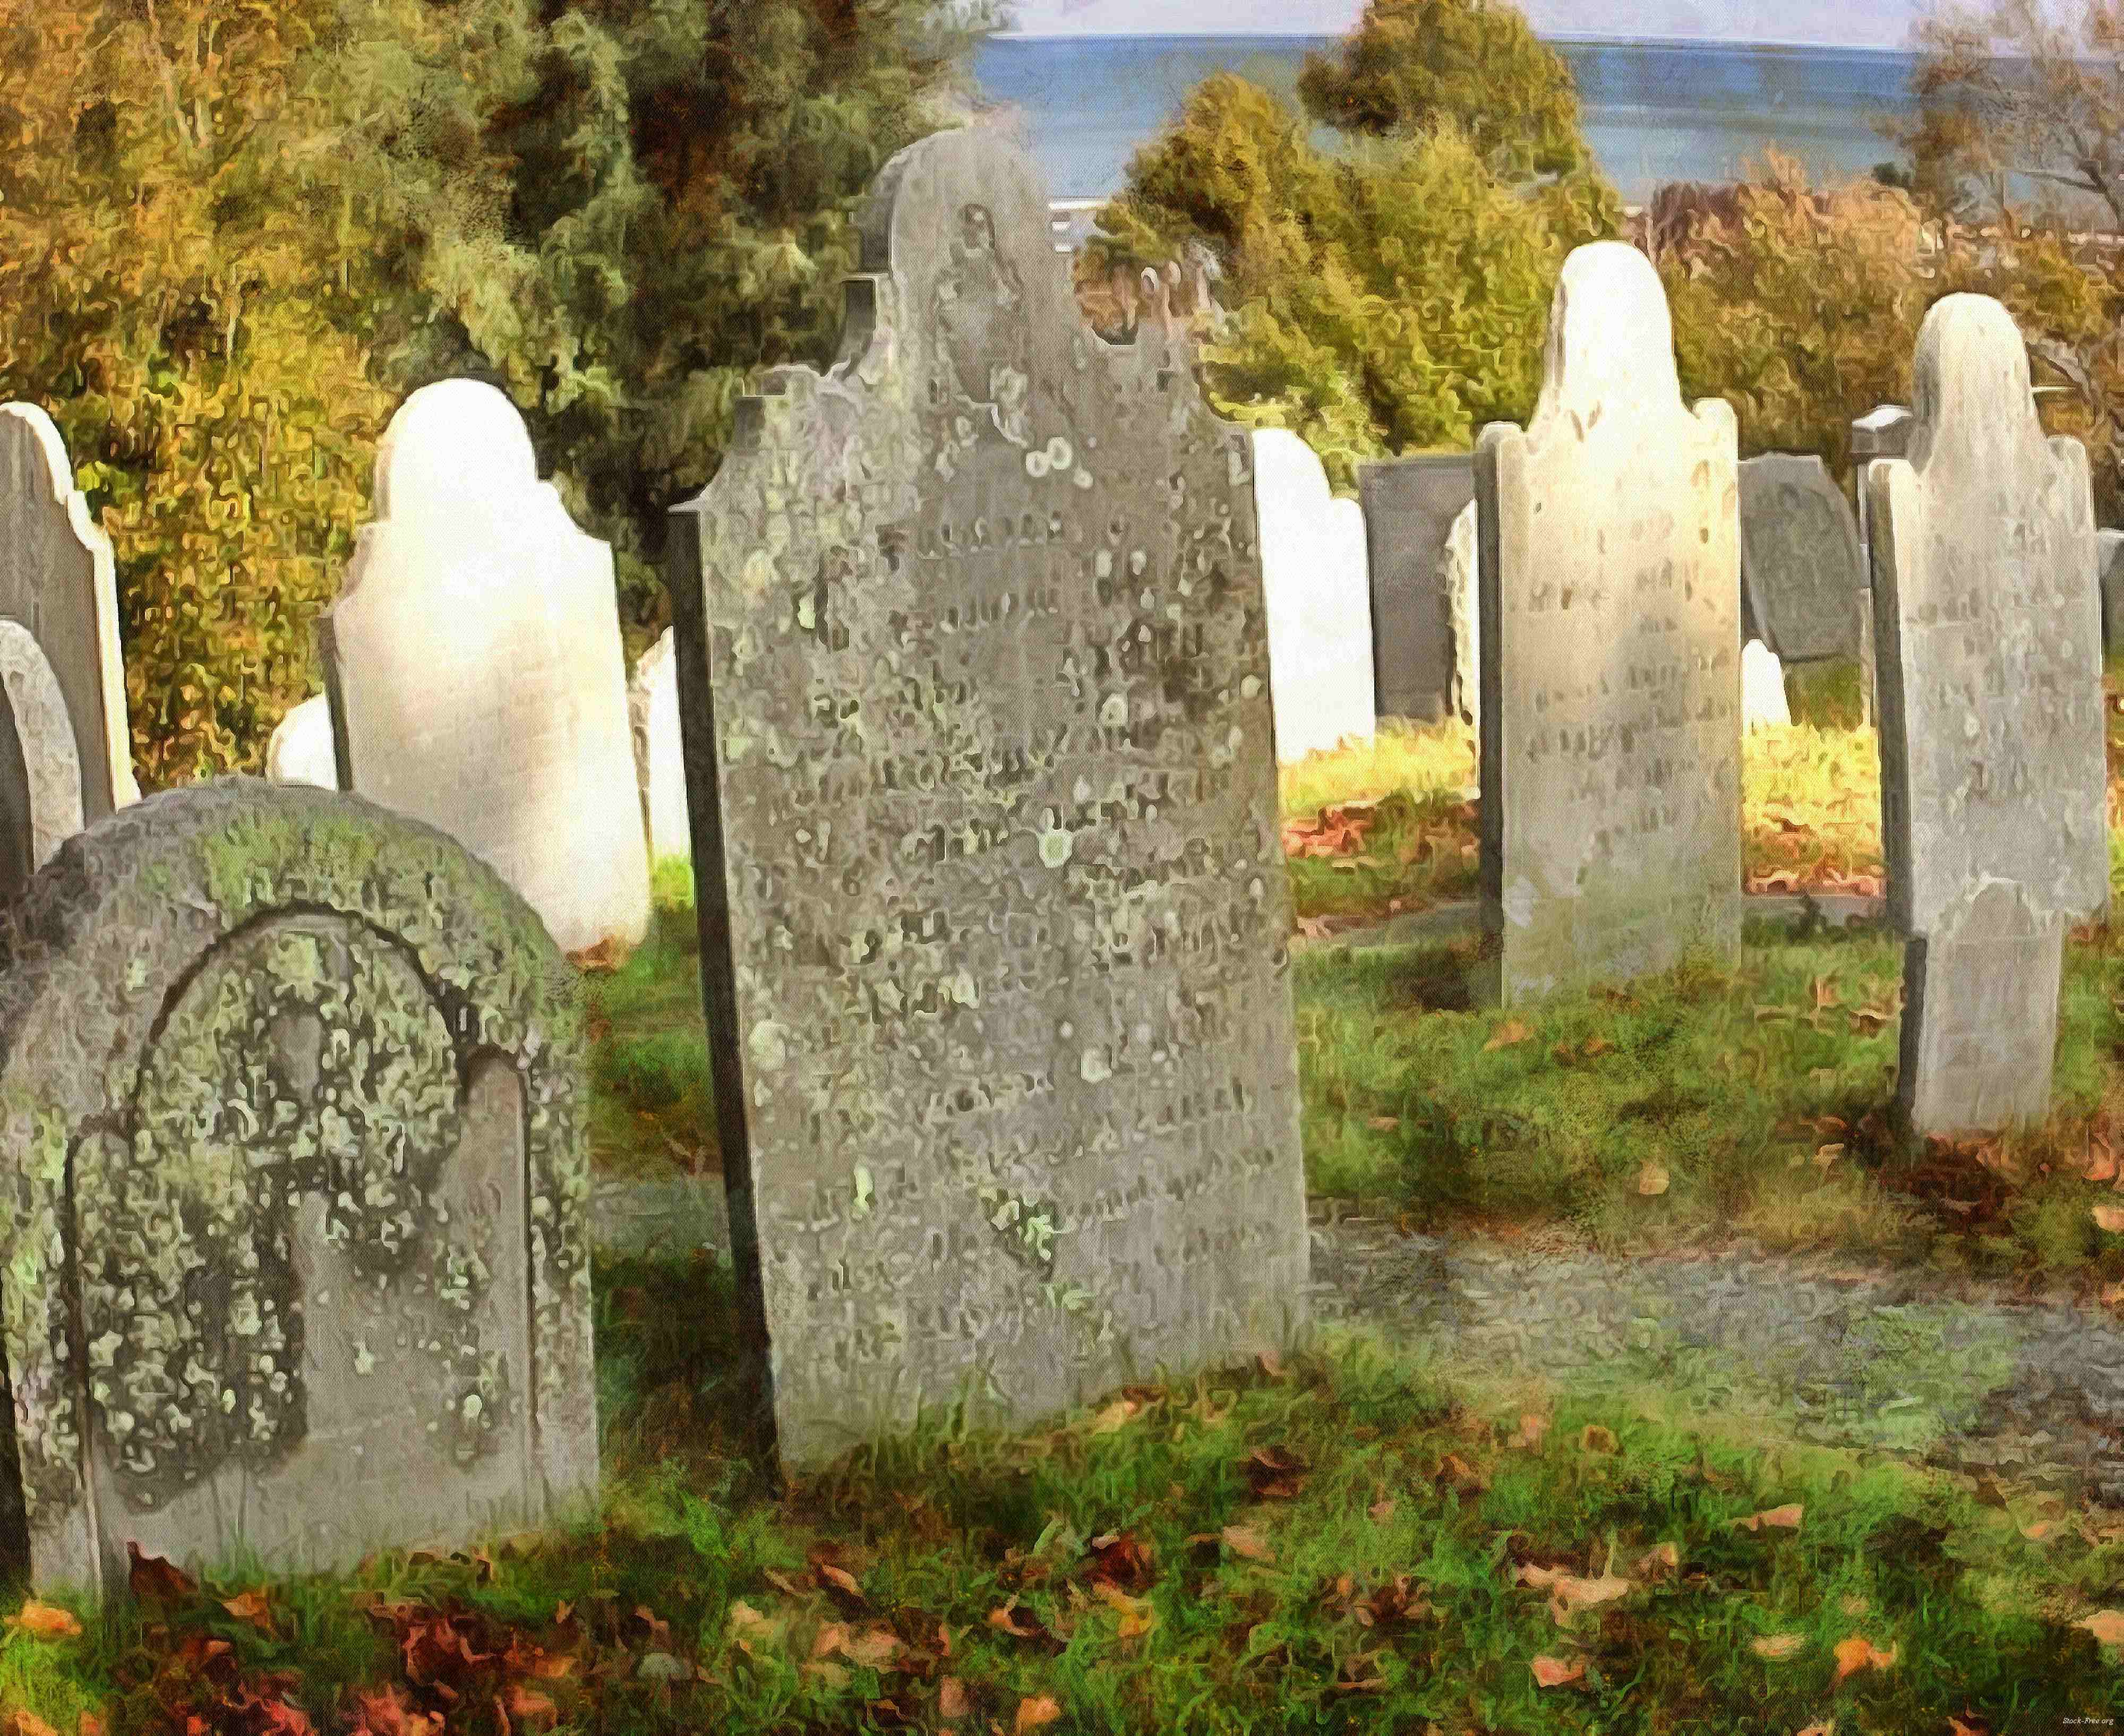 tombstone, grave, cemetery, grave, bones, holiday, halloween, - halloween, free stock photos, public domain images, stock free images, download for free